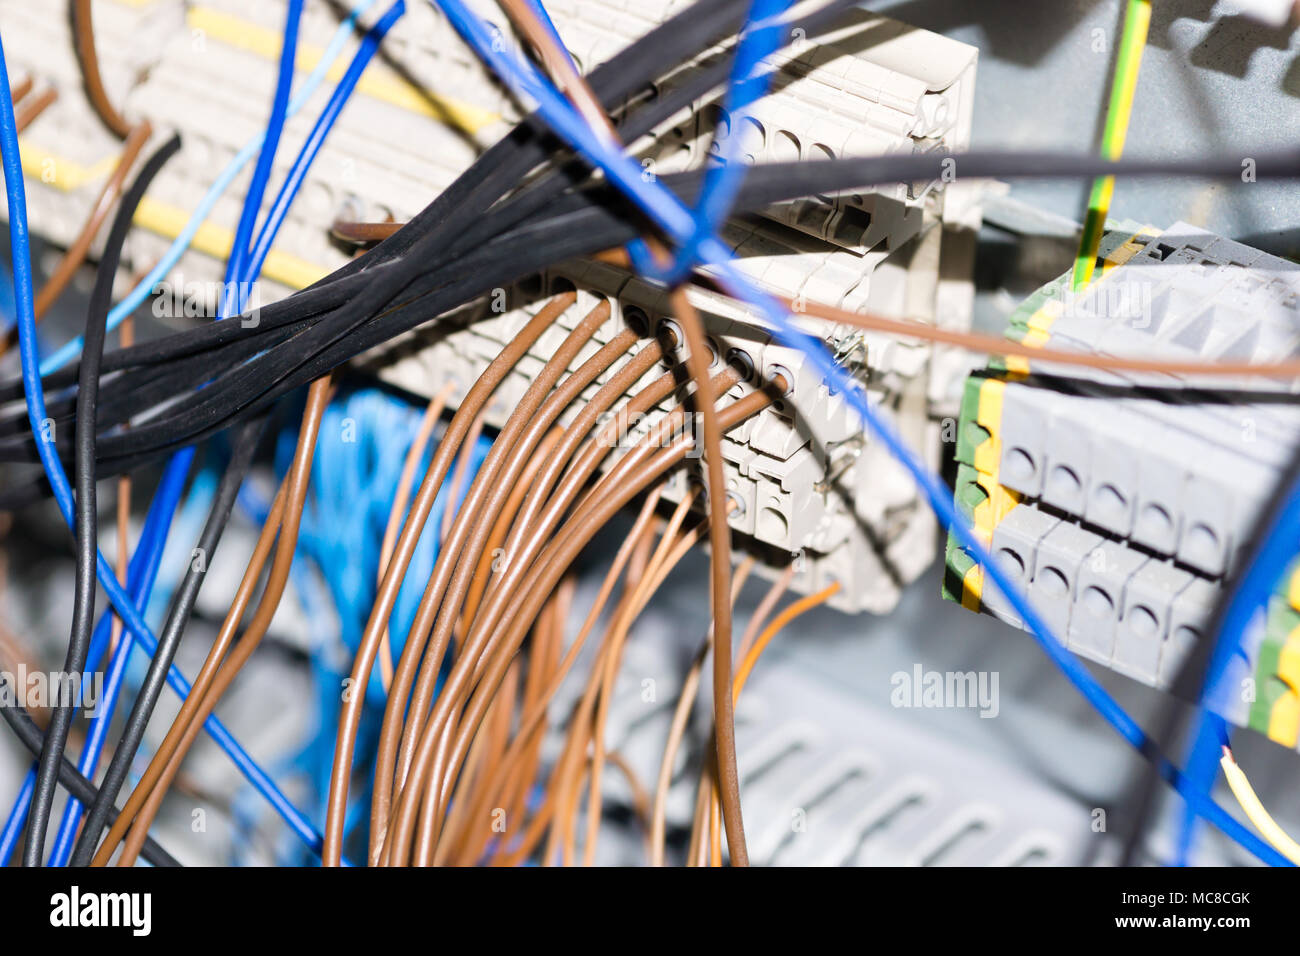 Electrical Equipment Components Installation In Fuse Box Wiring And Wire Connections